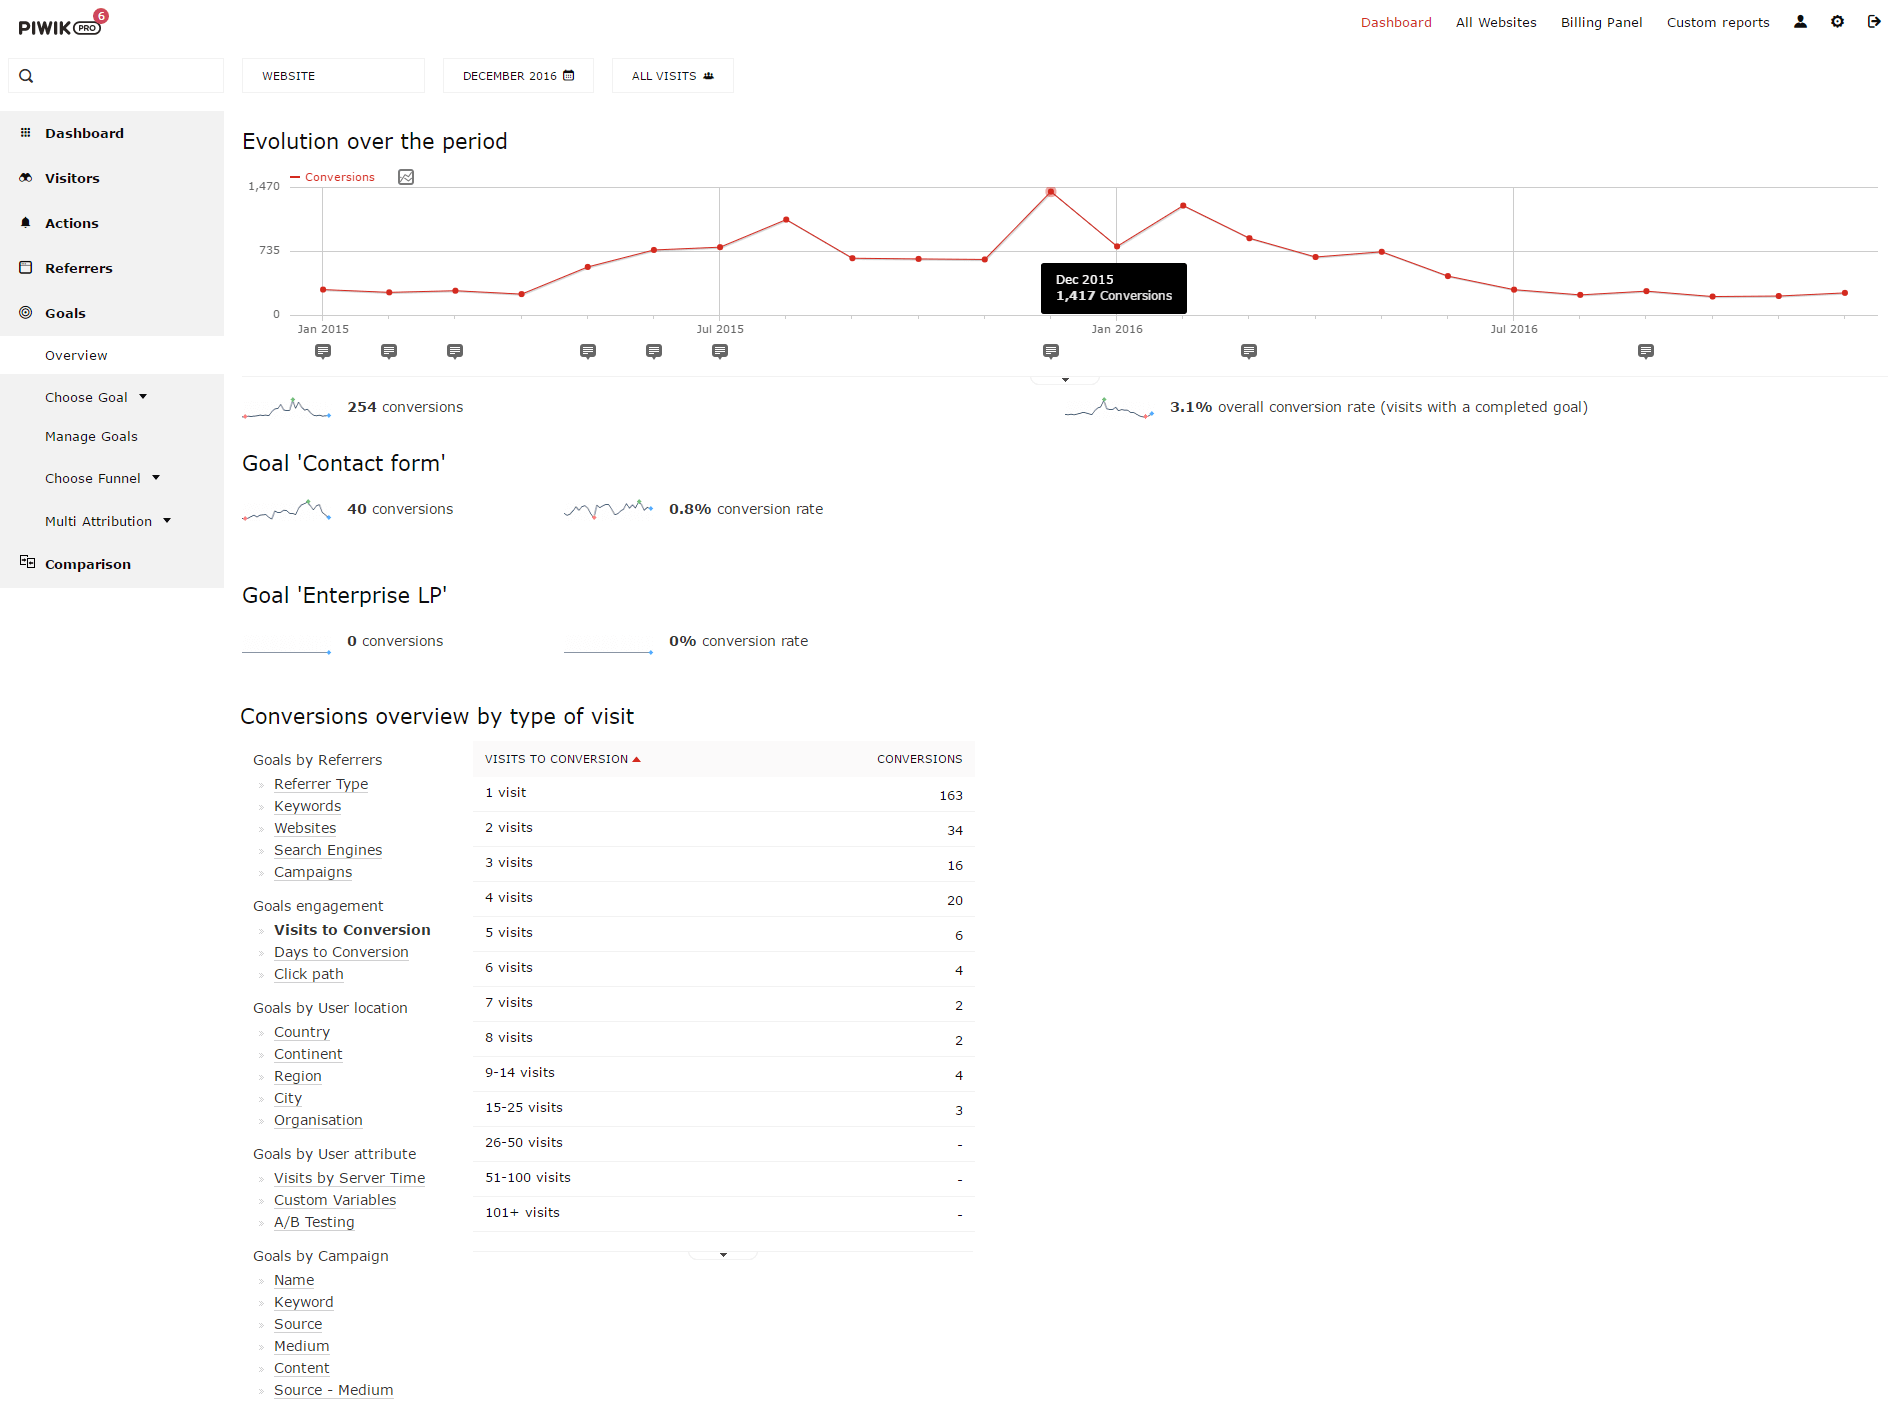 Piwik PRO Goal Overview Report